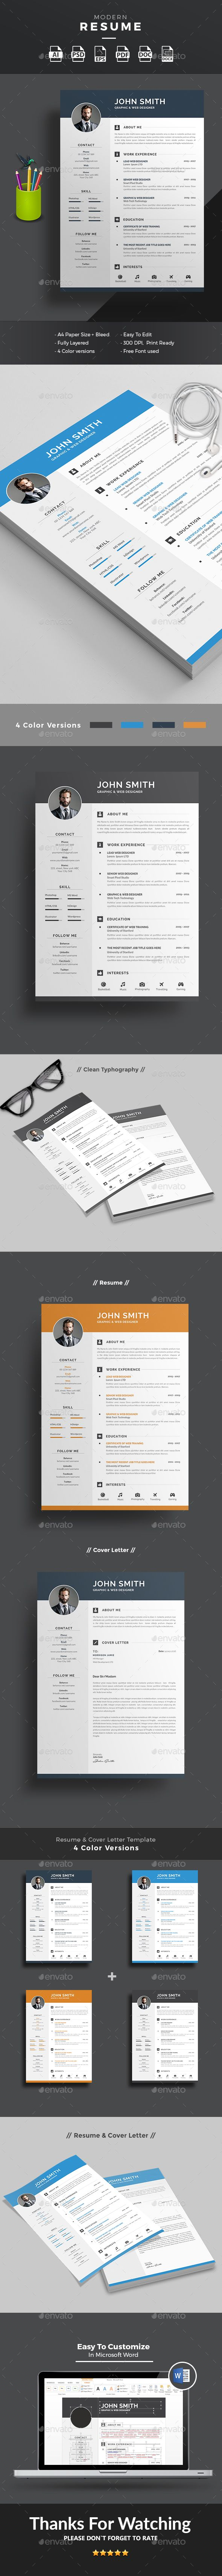 #Resume - Resumes #Stationery - #Clean Resume & CV Template - #Word Resume Template - #Photoshop Resume Template - #Modern Resume - #Illustrator Resume Template -Download here: https://graphicriver.net/item/resume/17494830?ref=alena994